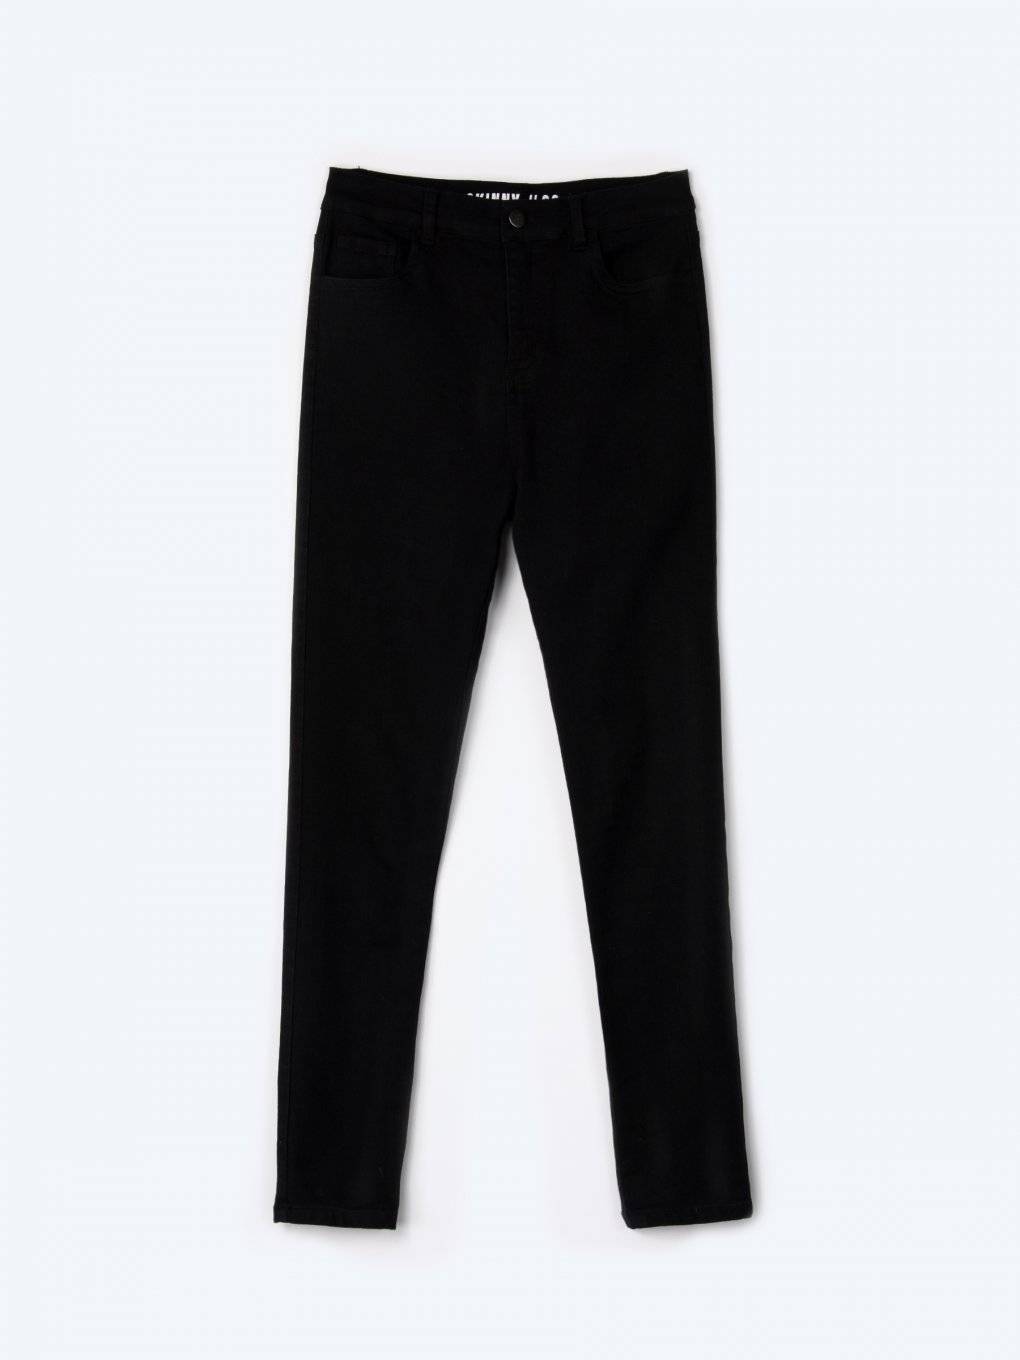 High-waisted elastic skinny trousers